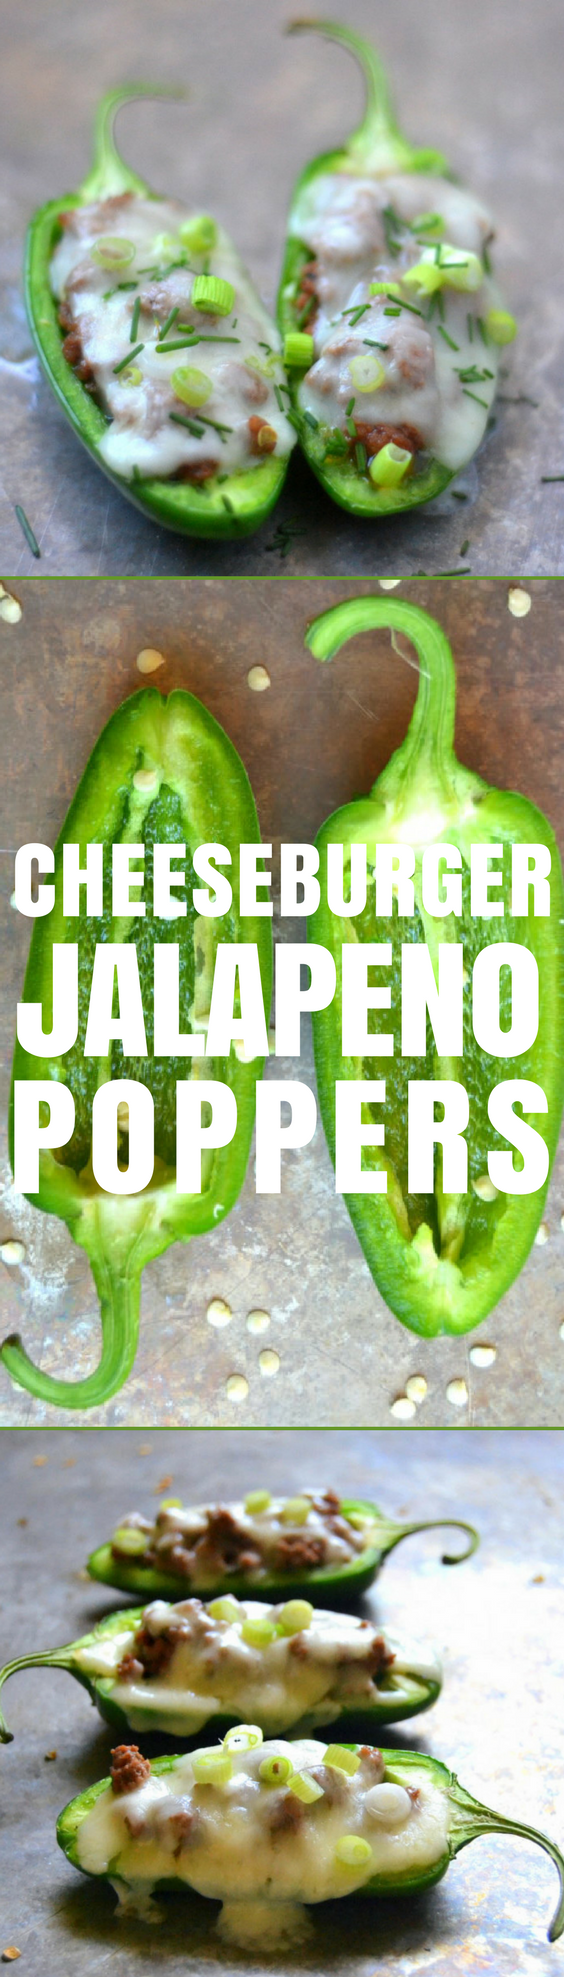 Cheeseburger Jalapeño Poppers pin